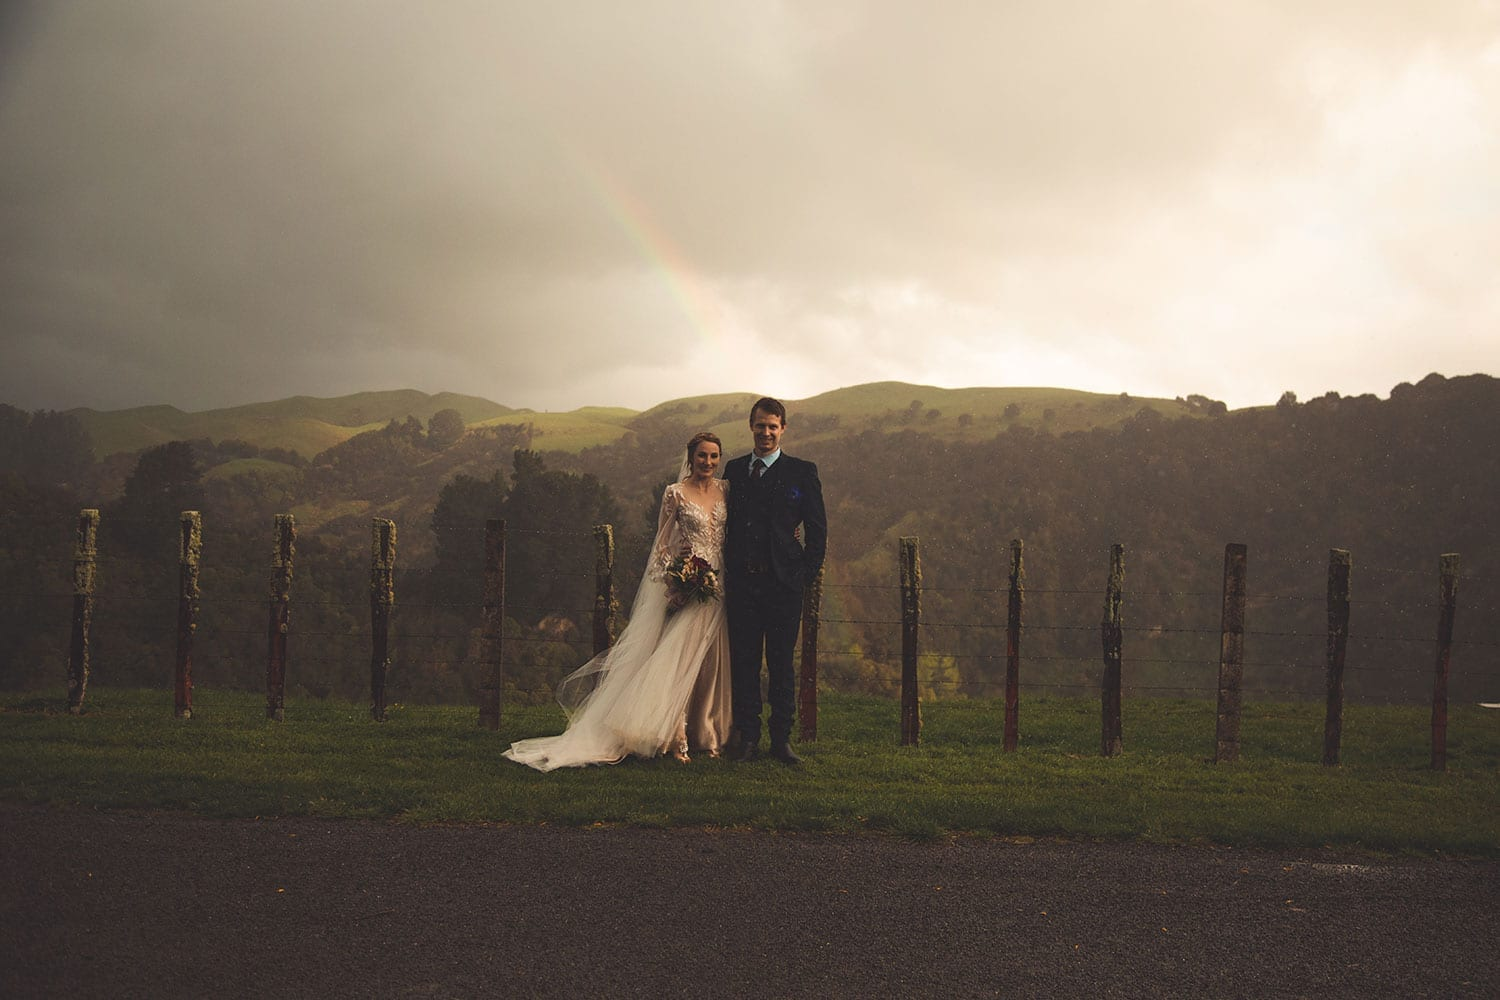 Vinka Design Features Real Weddings - bride in custom made gown, a combination of Isabelle and Ivy from our Heart of Havana collection. Bride and groom pose by outdoor fence with expansive backdrop